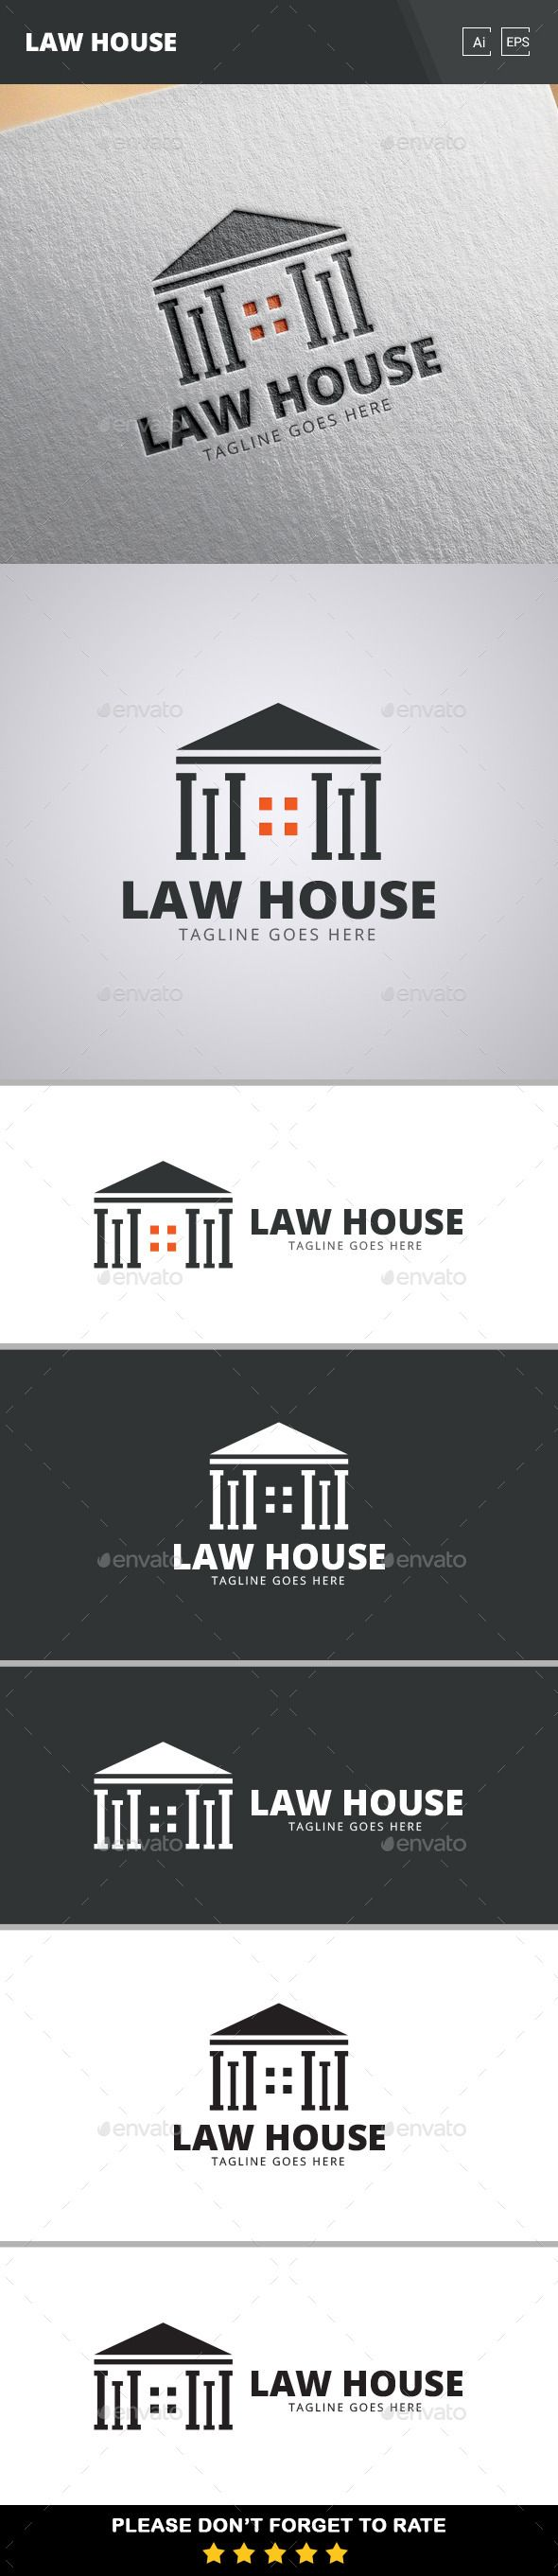 Law House Logo Template #vector #eps #court #lawyer • Available here → https://graphicriver.net/item/law-house-logo-template/11064611?ref=pxcr